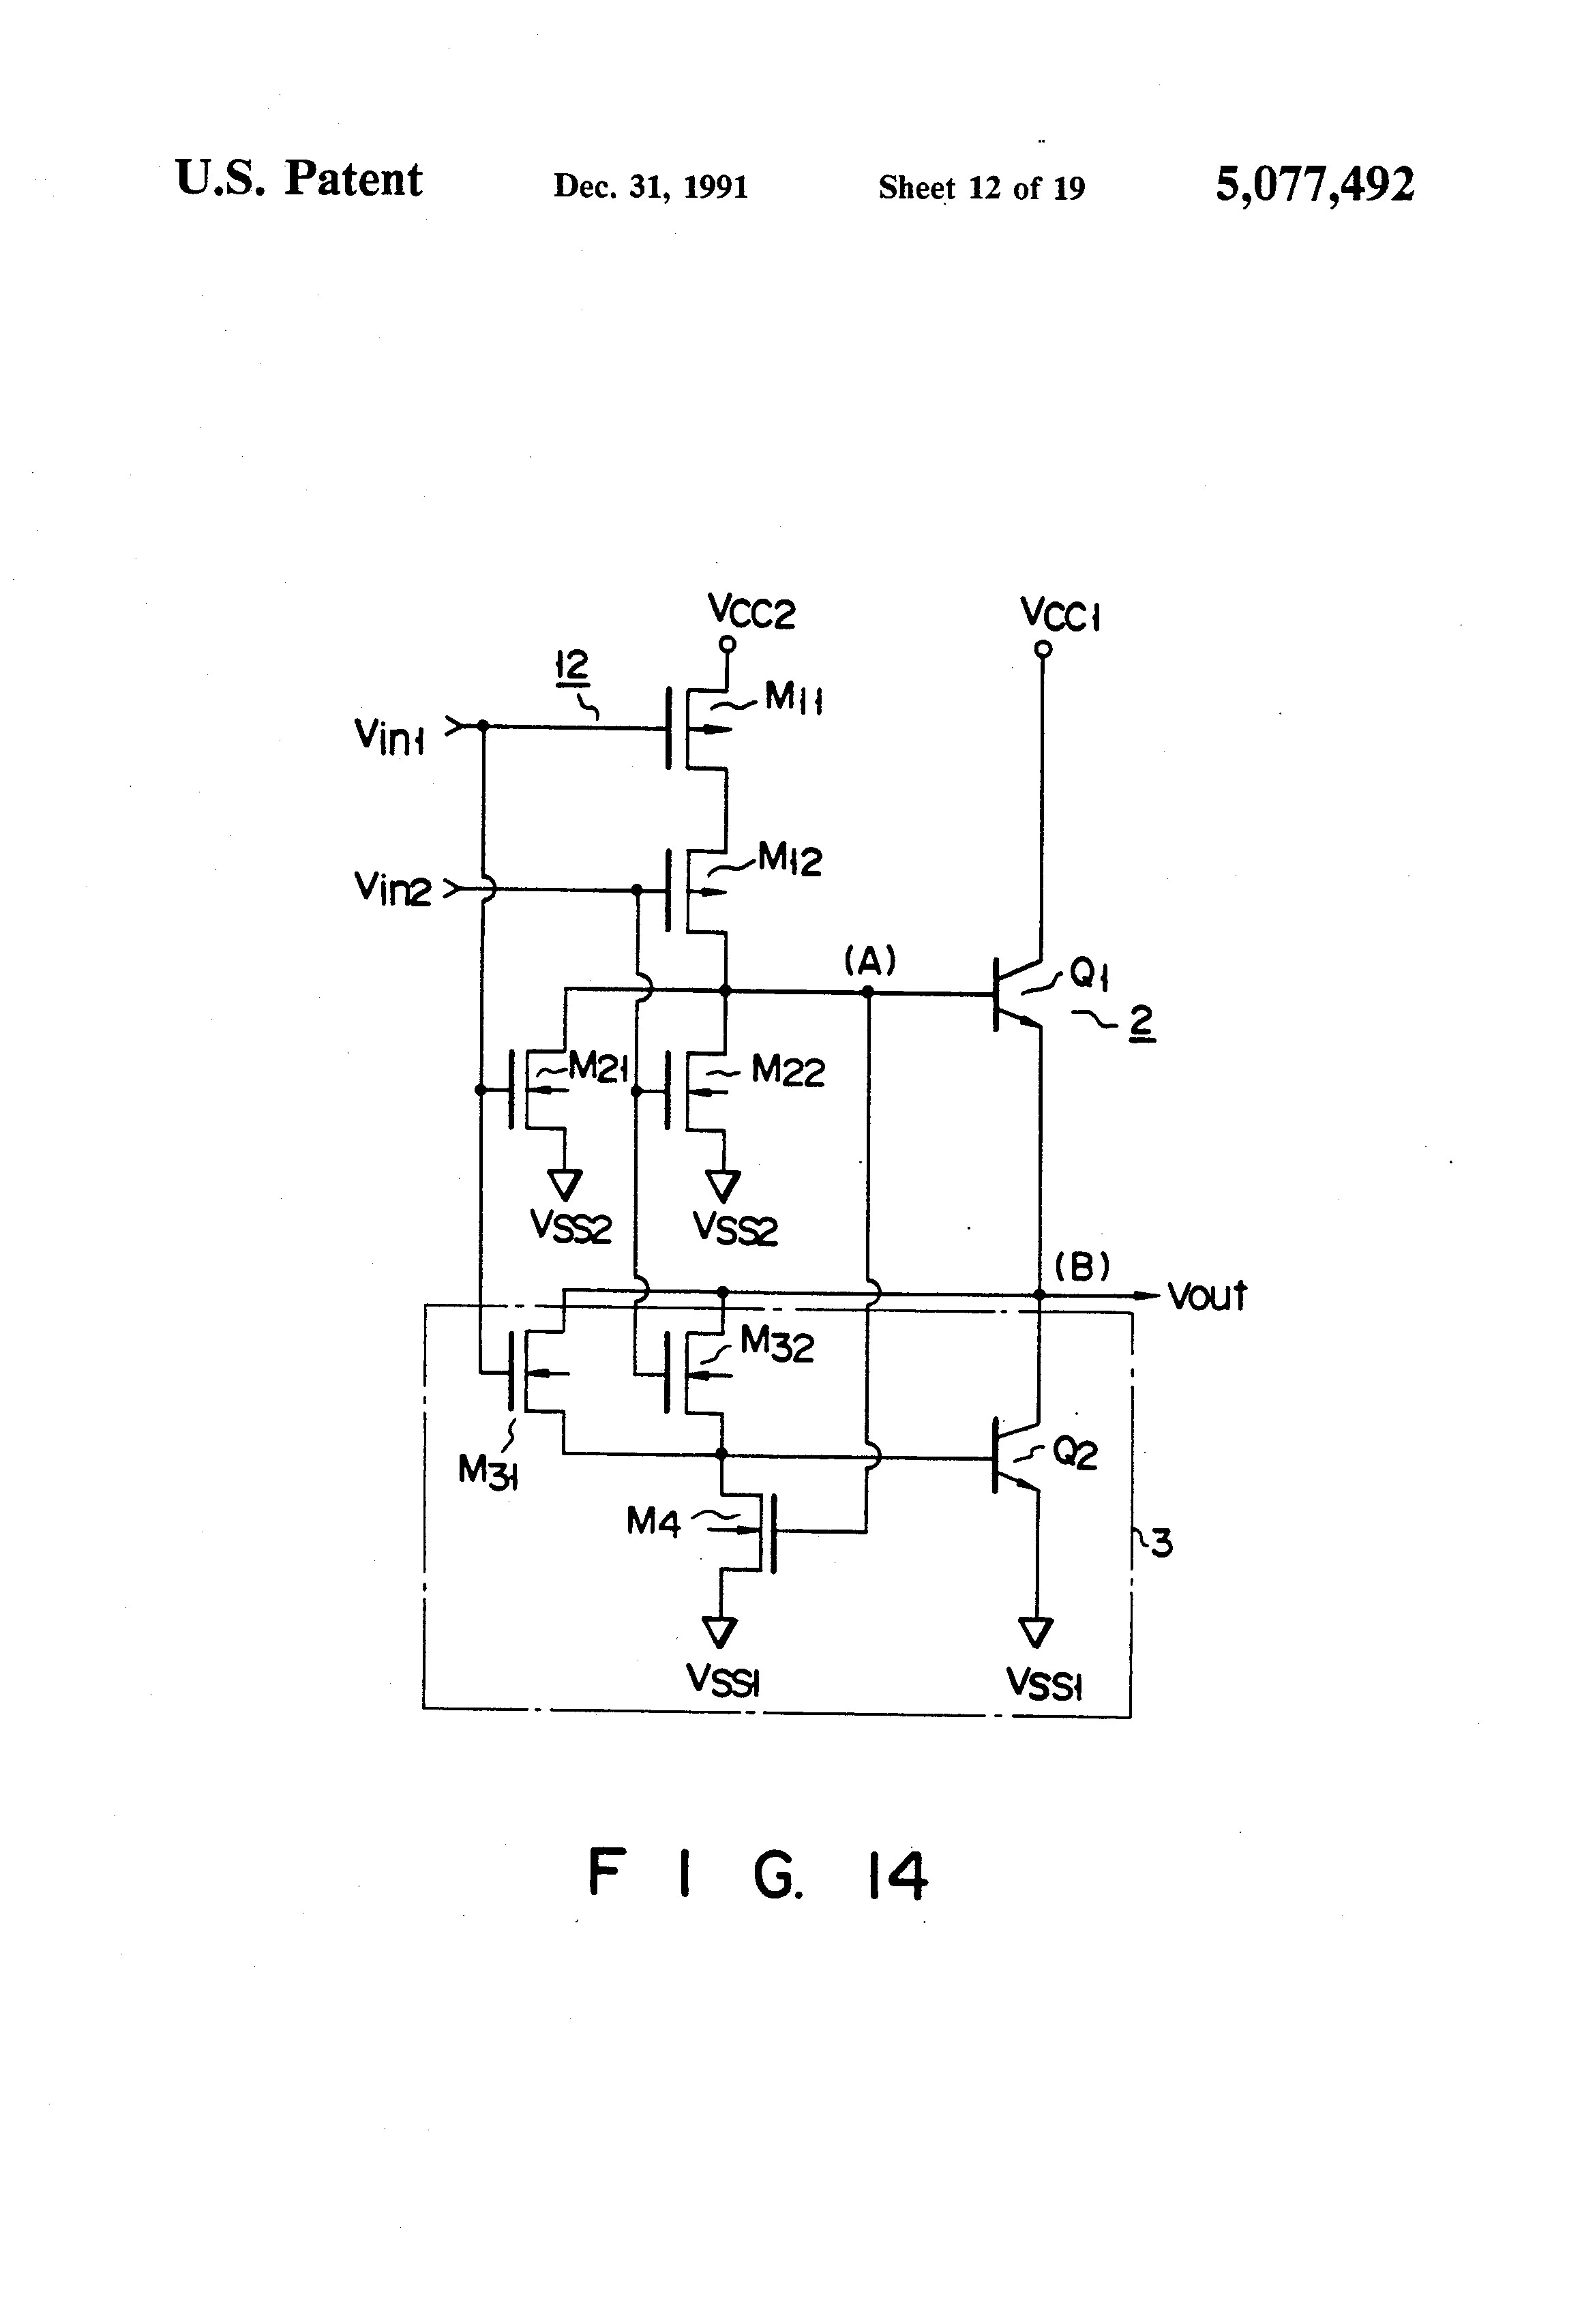 ponent Circuit Diagram And Gate Nand The Patent Us Bicmos Circuitry Having A bination